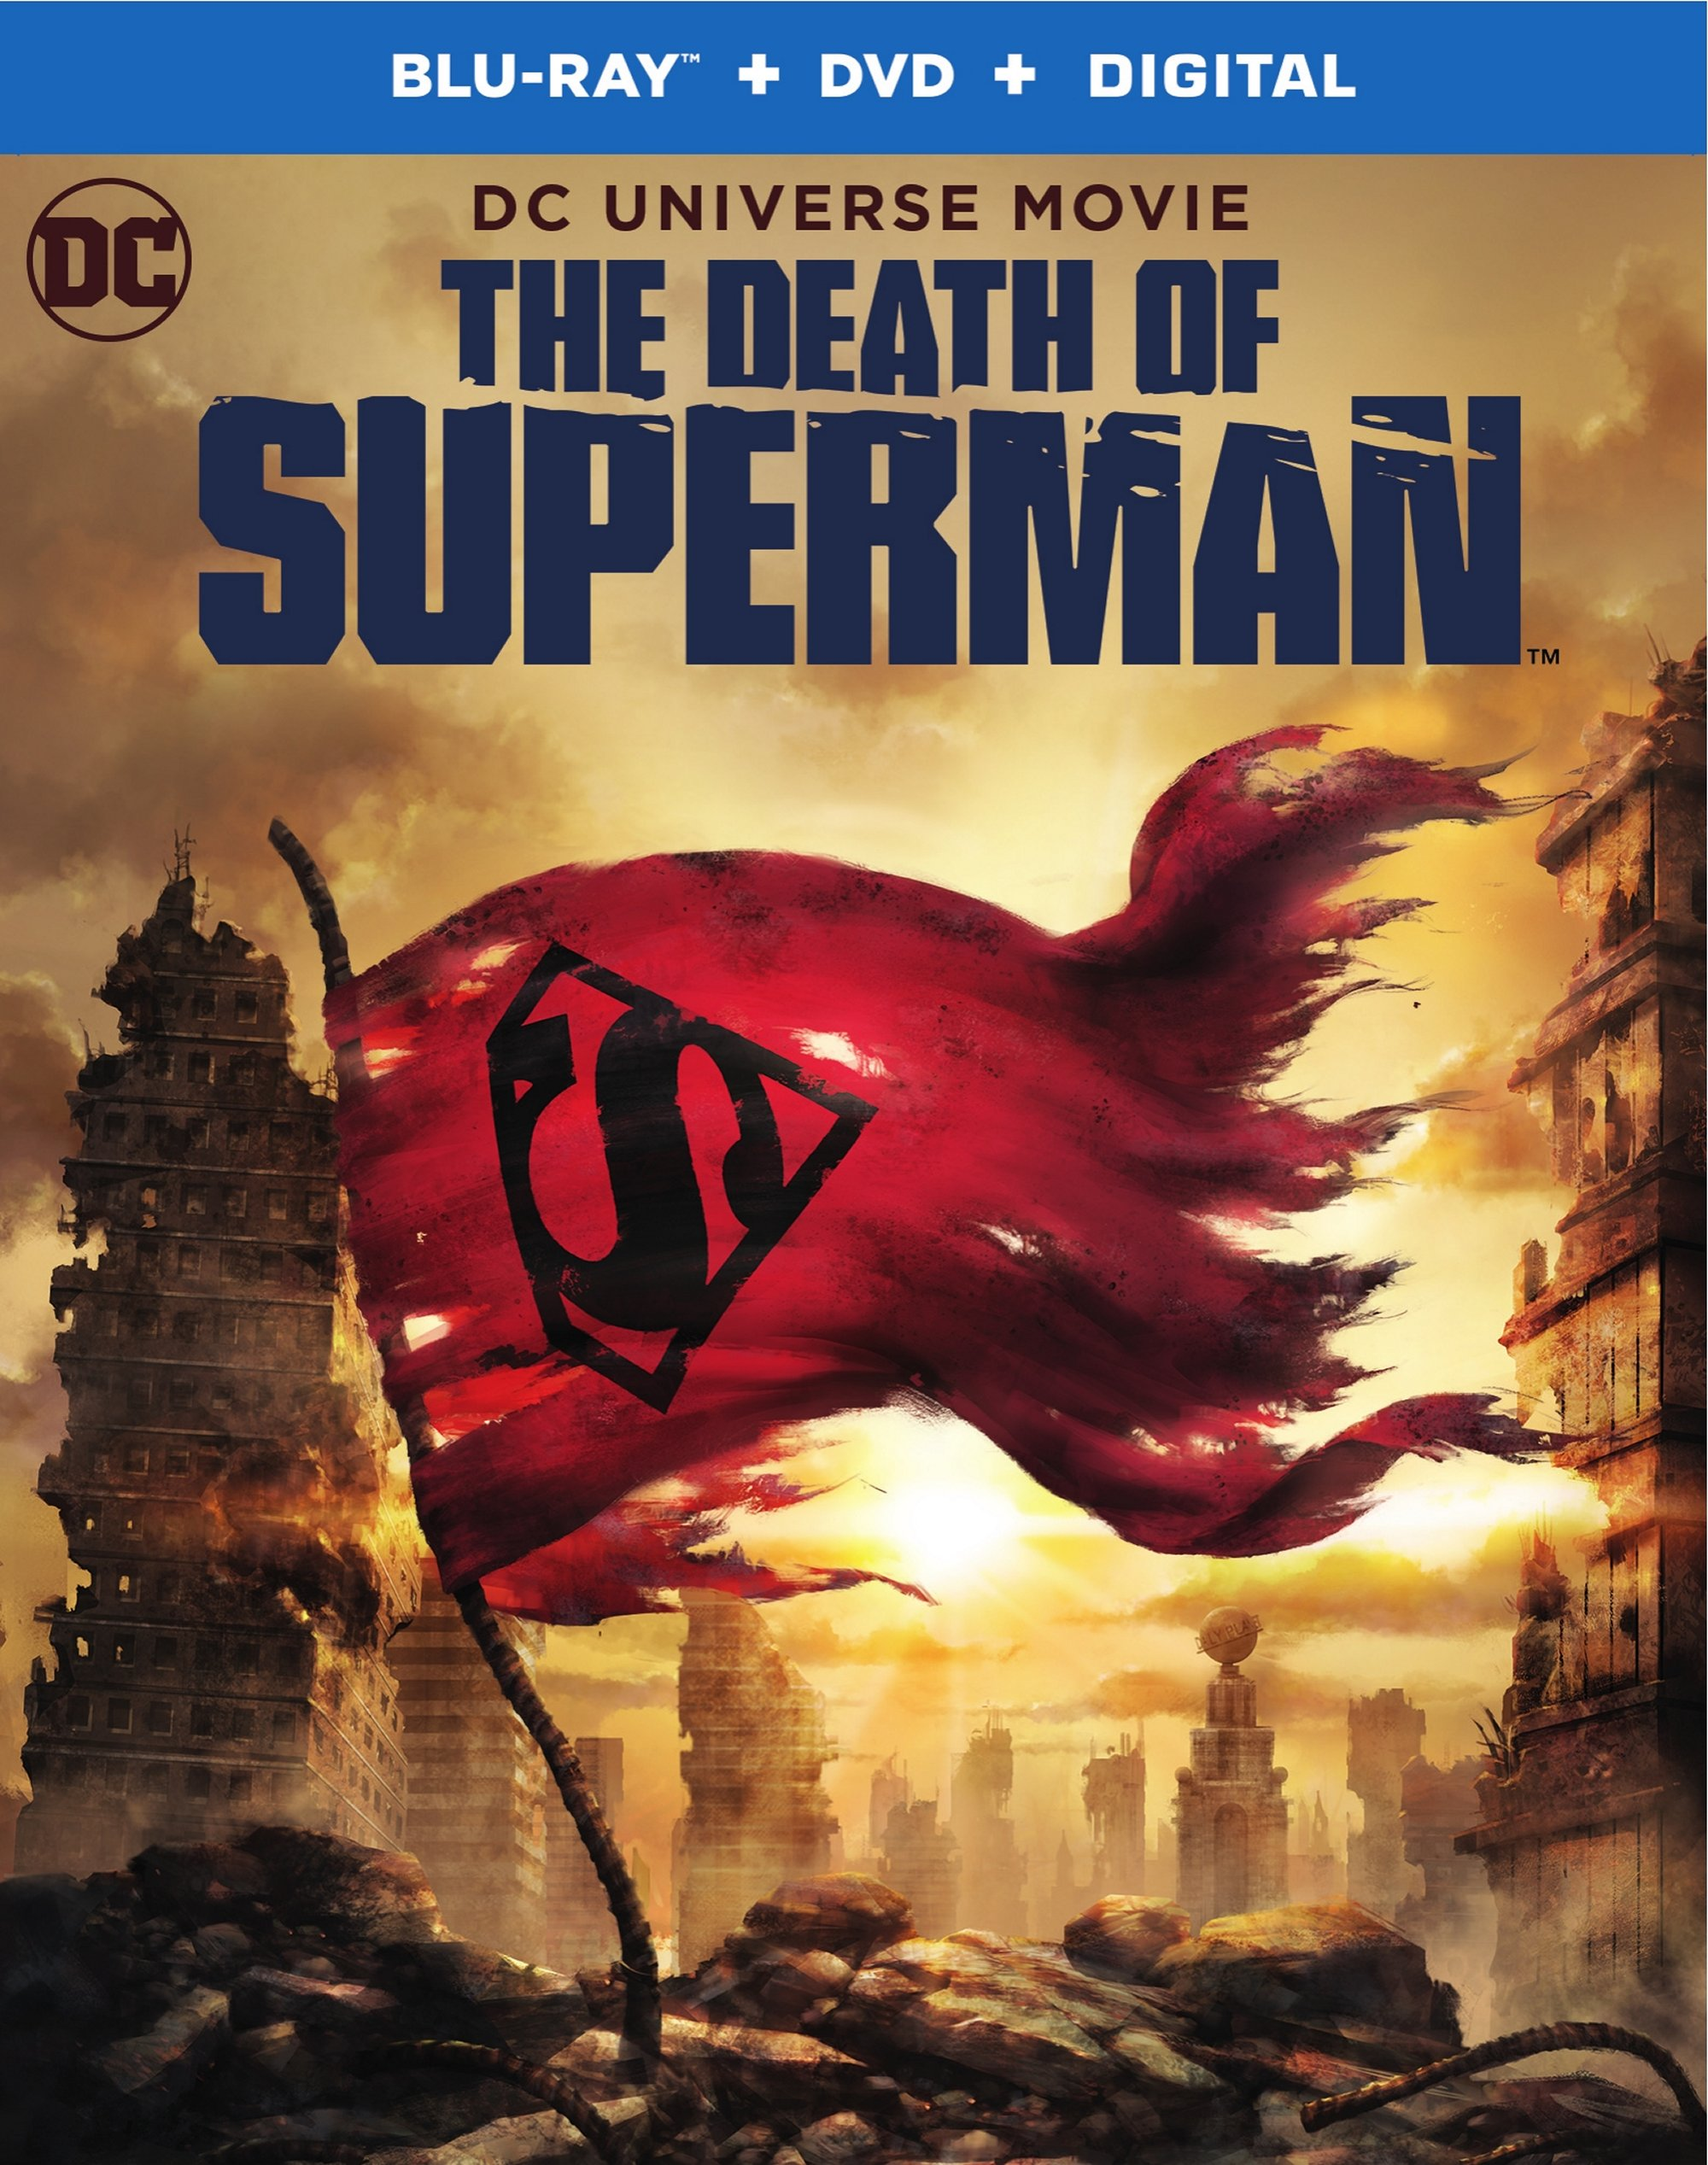 The Death Of Superman Review Short Circuit Bluray Front Row Reviews More From Web